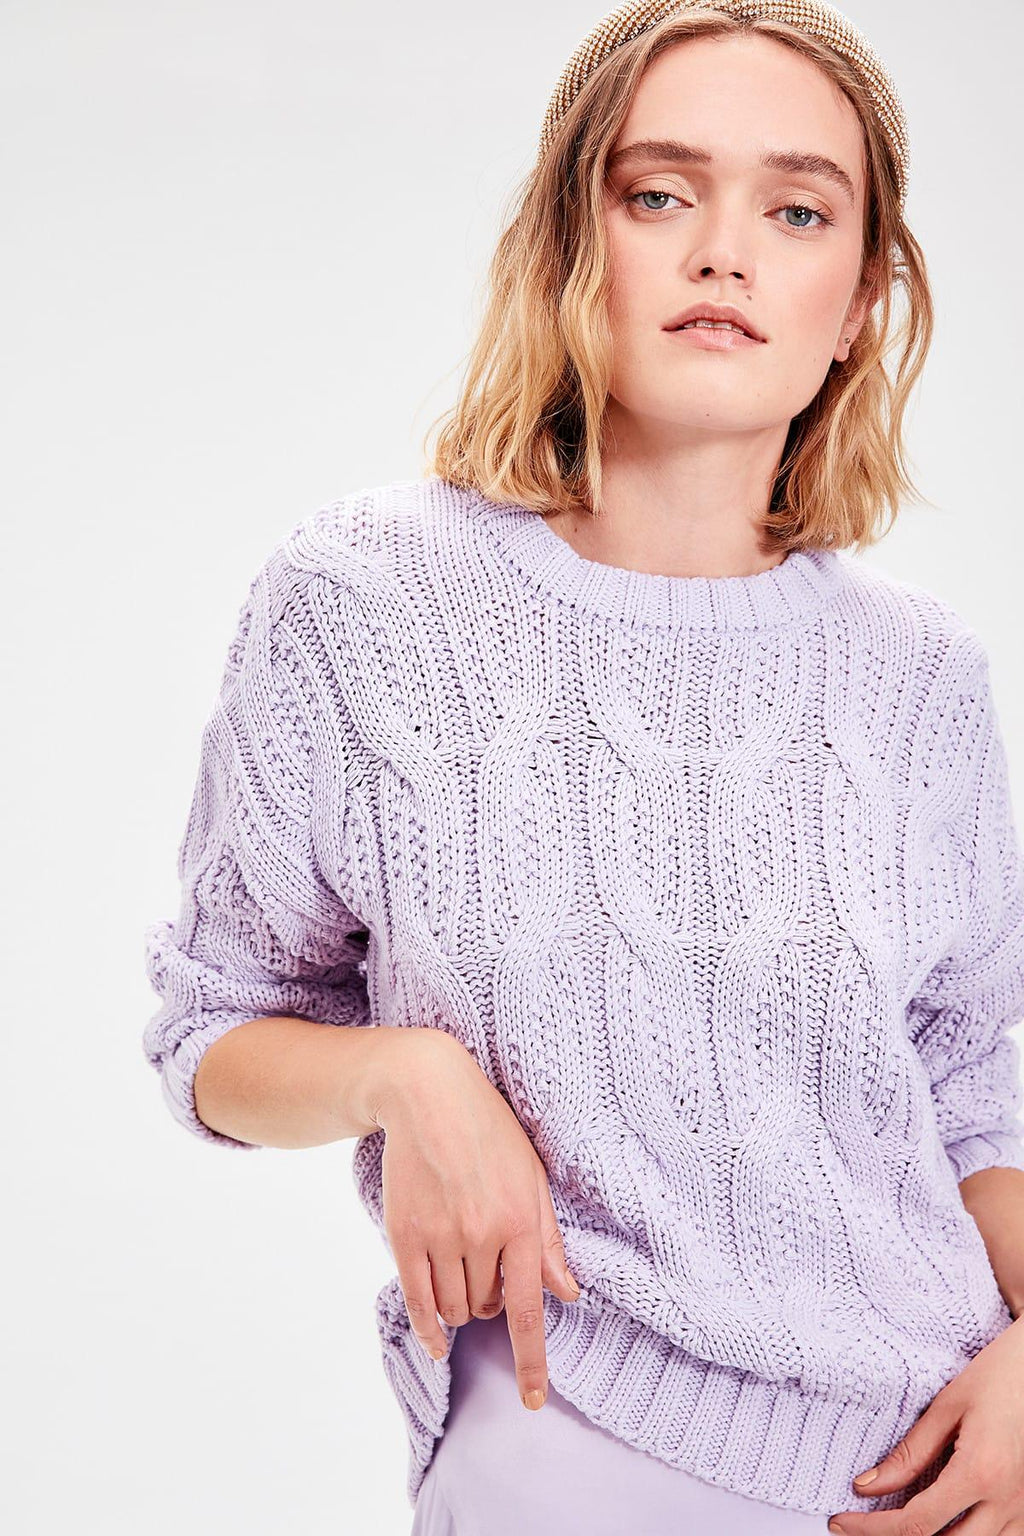 Lilac Hair Braided Knitwear Sweater